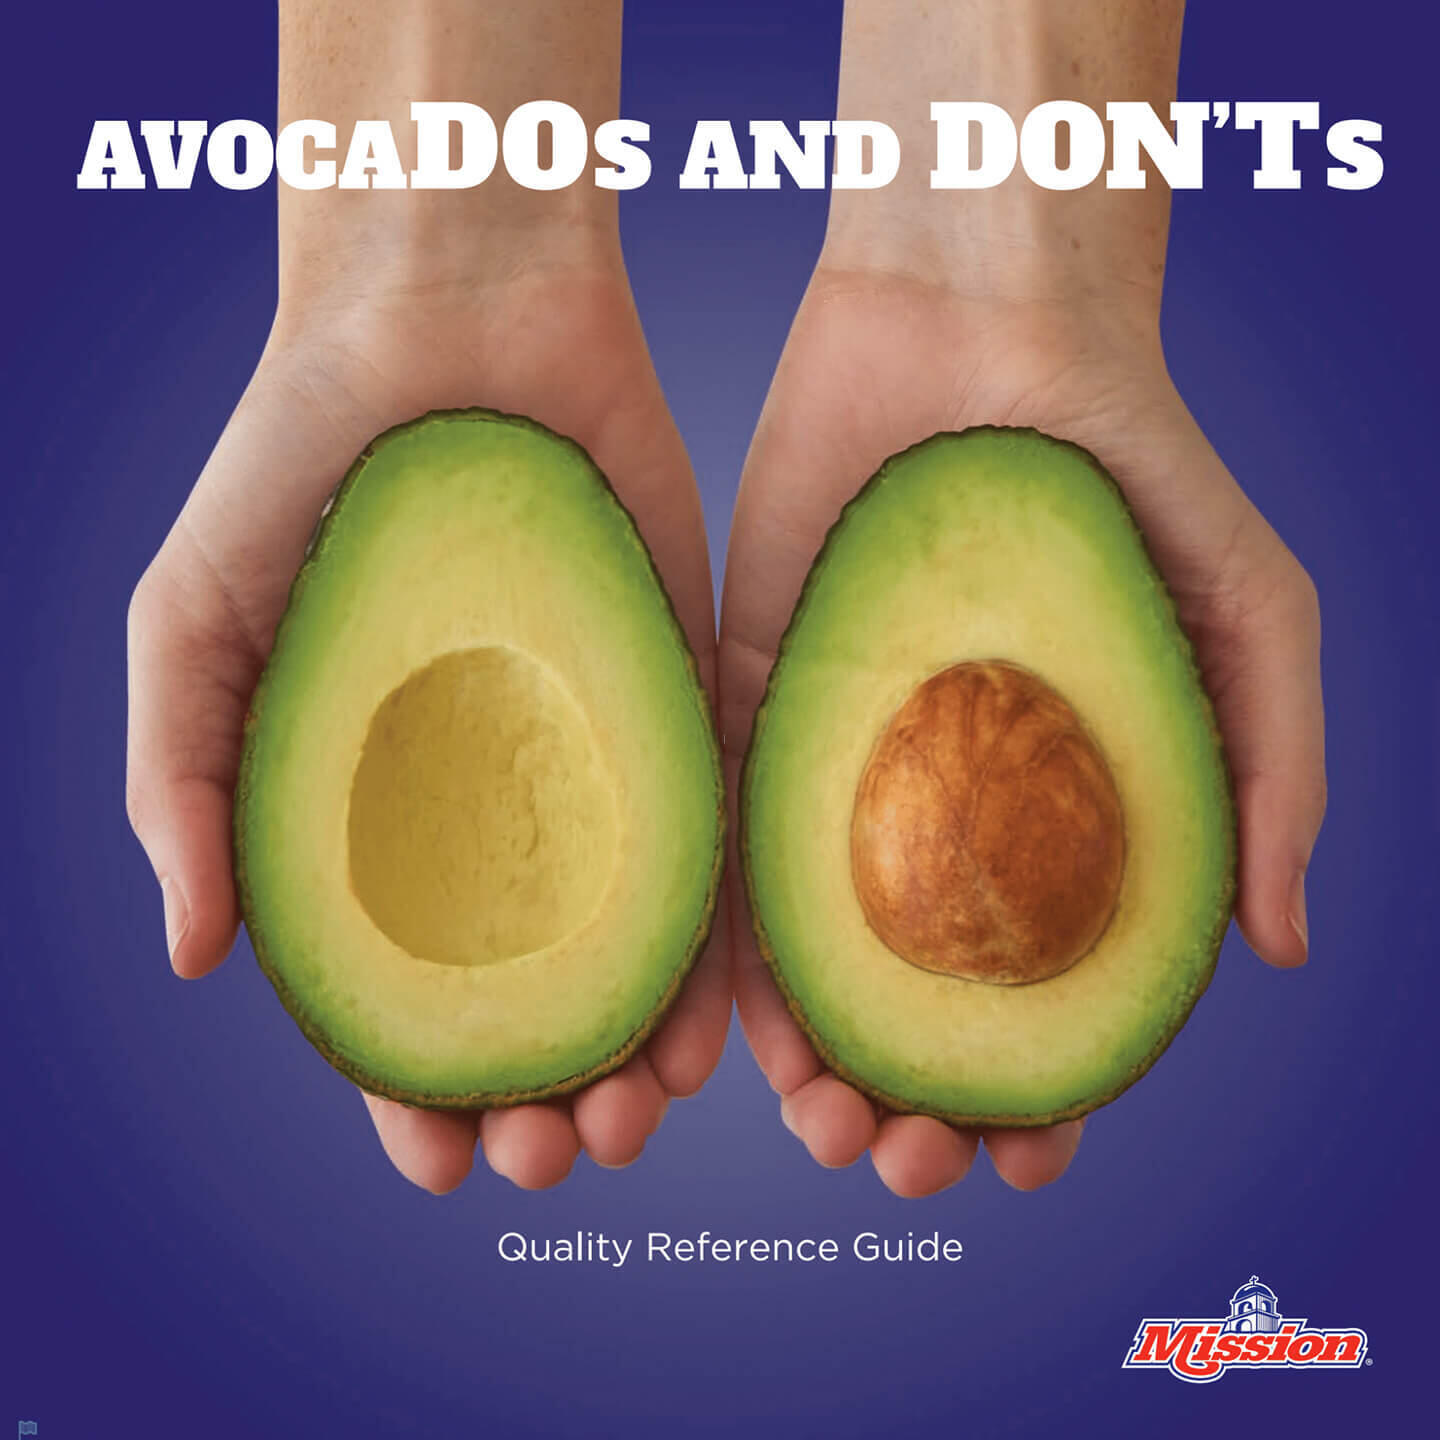 AvocaDO's and DON'Ts - Quality